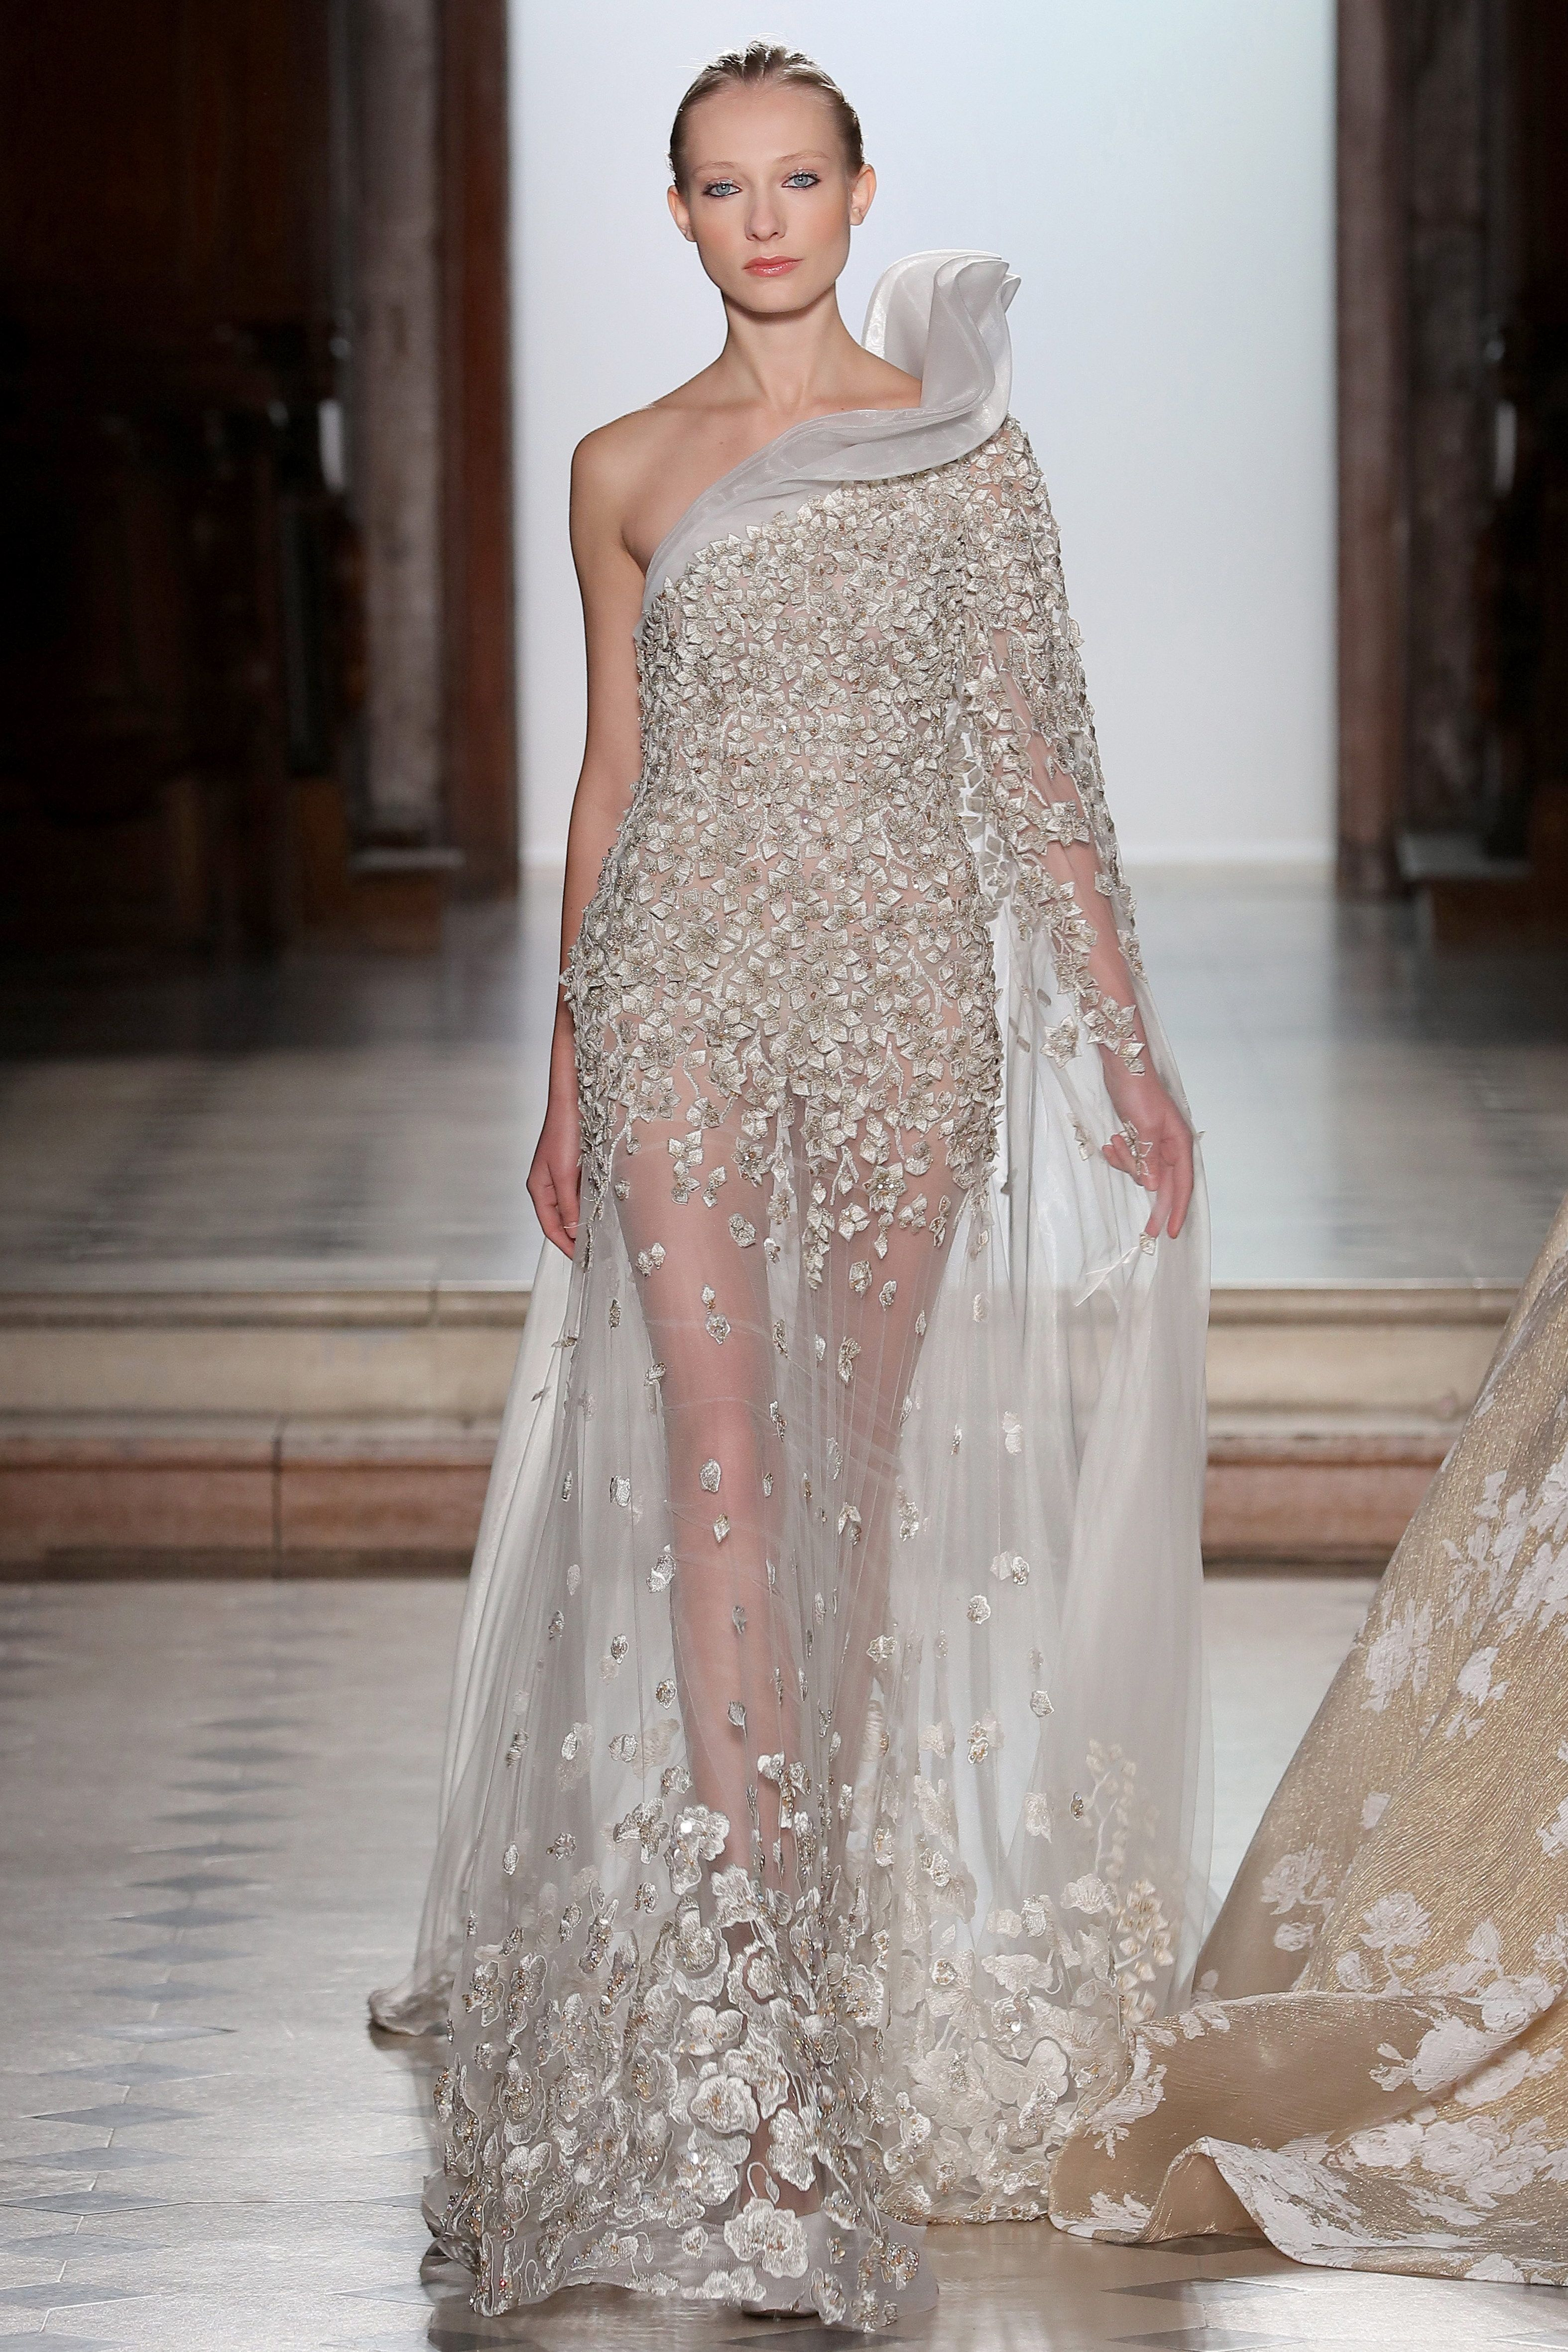 d29184fffb8 Tony Ward Couture I Spring Summer 2018 I White dress with hand-made silk  thread embroideries in form of fractals.